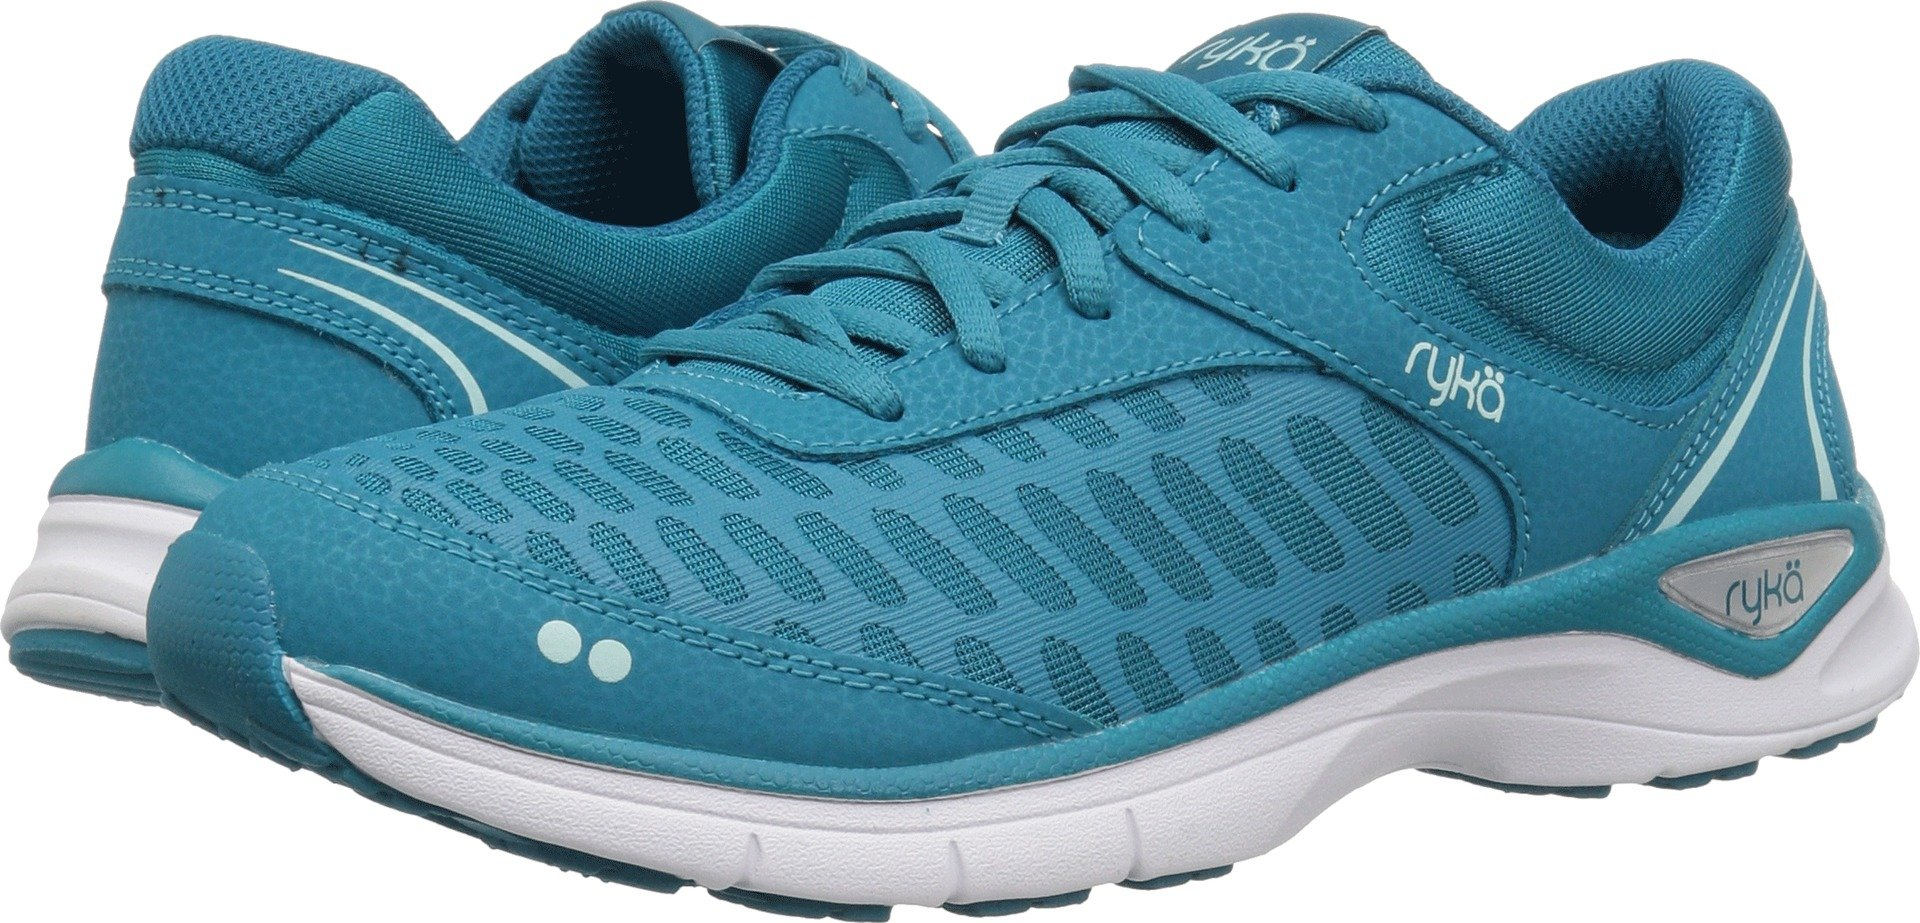 Ryka Women's Rae Walking Shoe, Blue, 7.5 M US